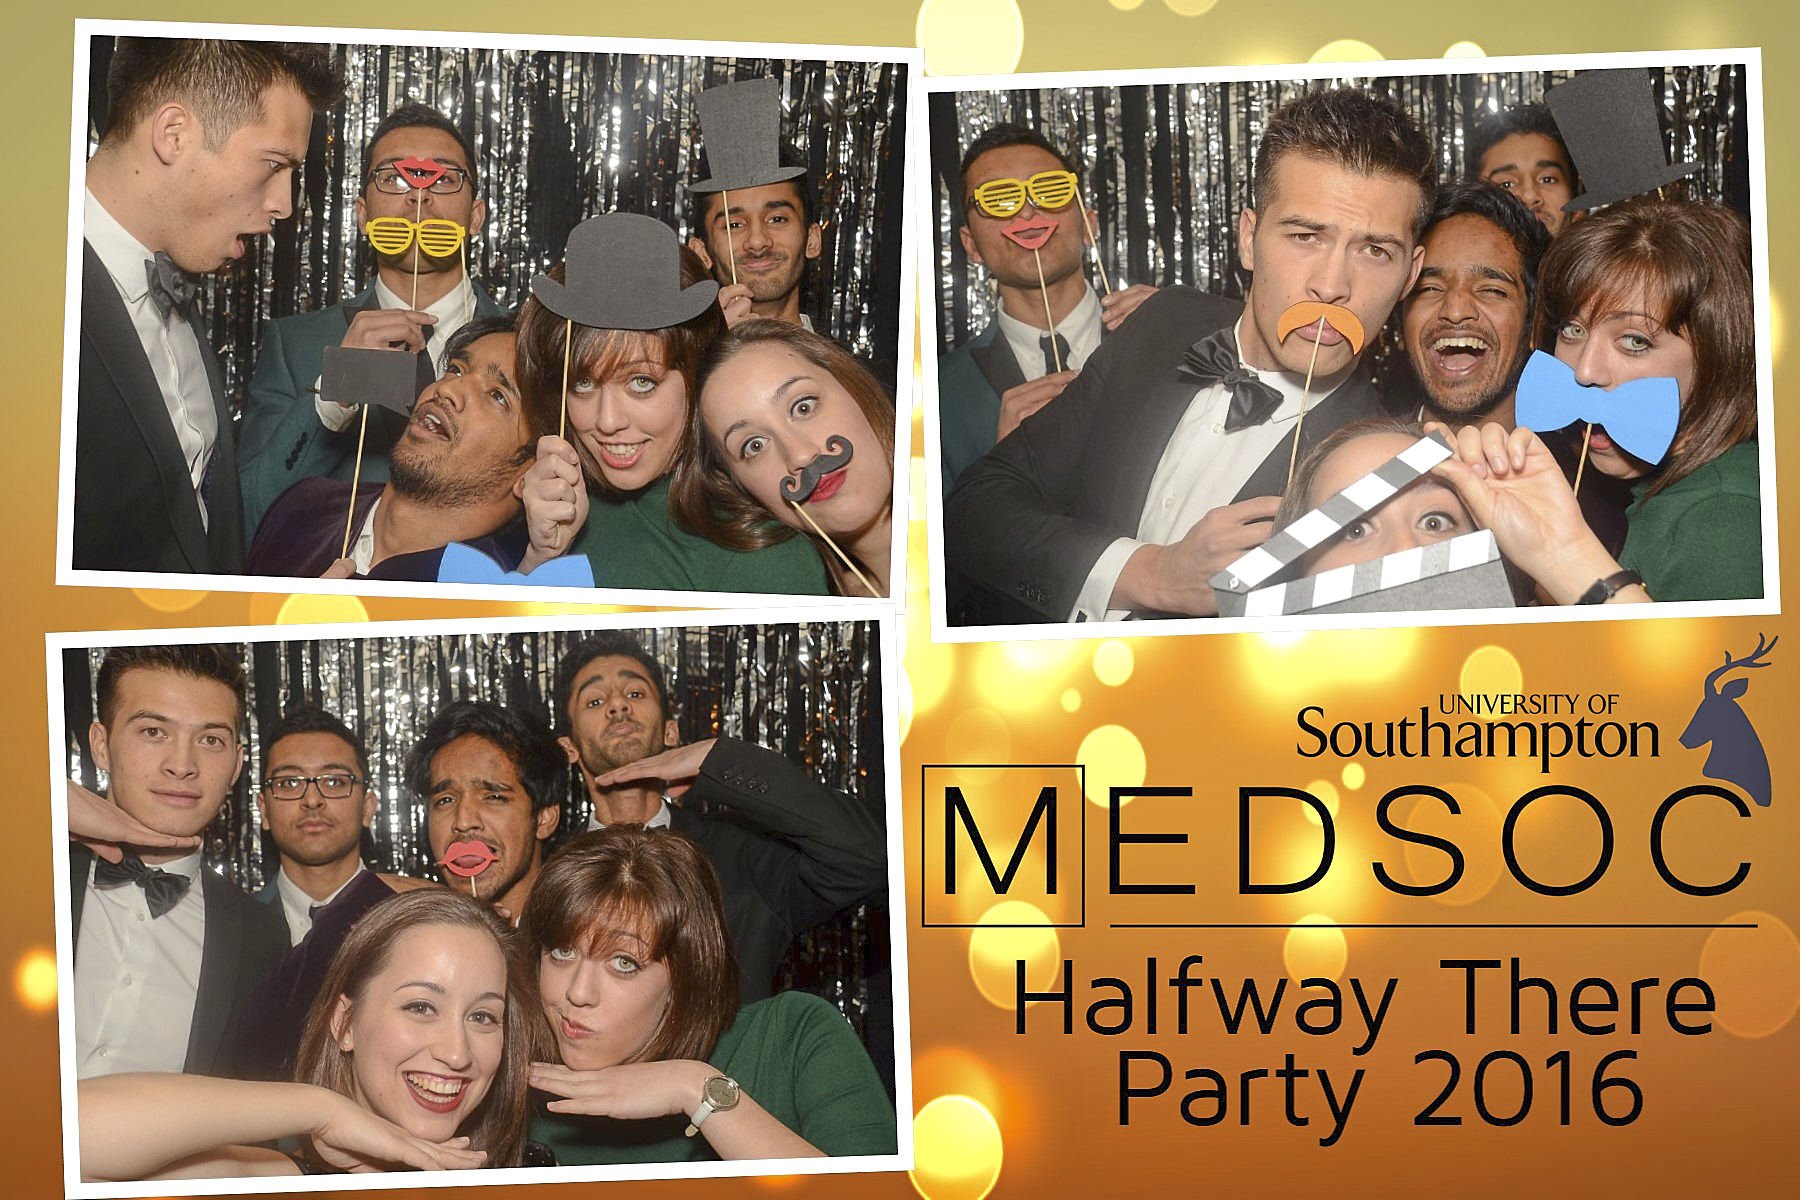 MedSoc Halfway There Party 2016 DS202927.jpg